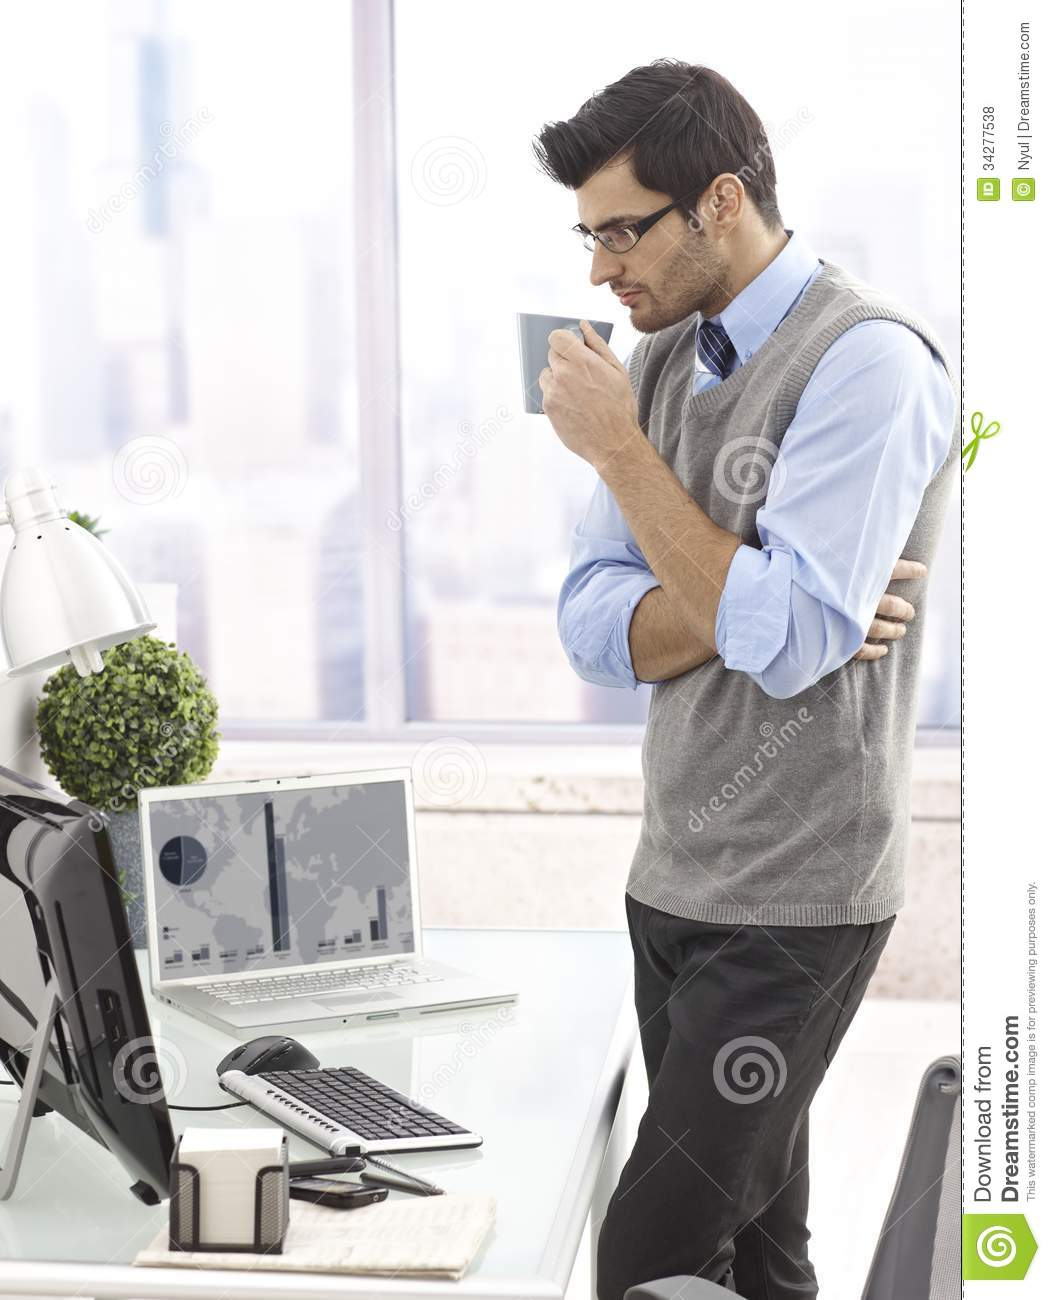 Businessman Drinking Coffee Standing In Office Royalty Free Stock Photos - Image: 34277538